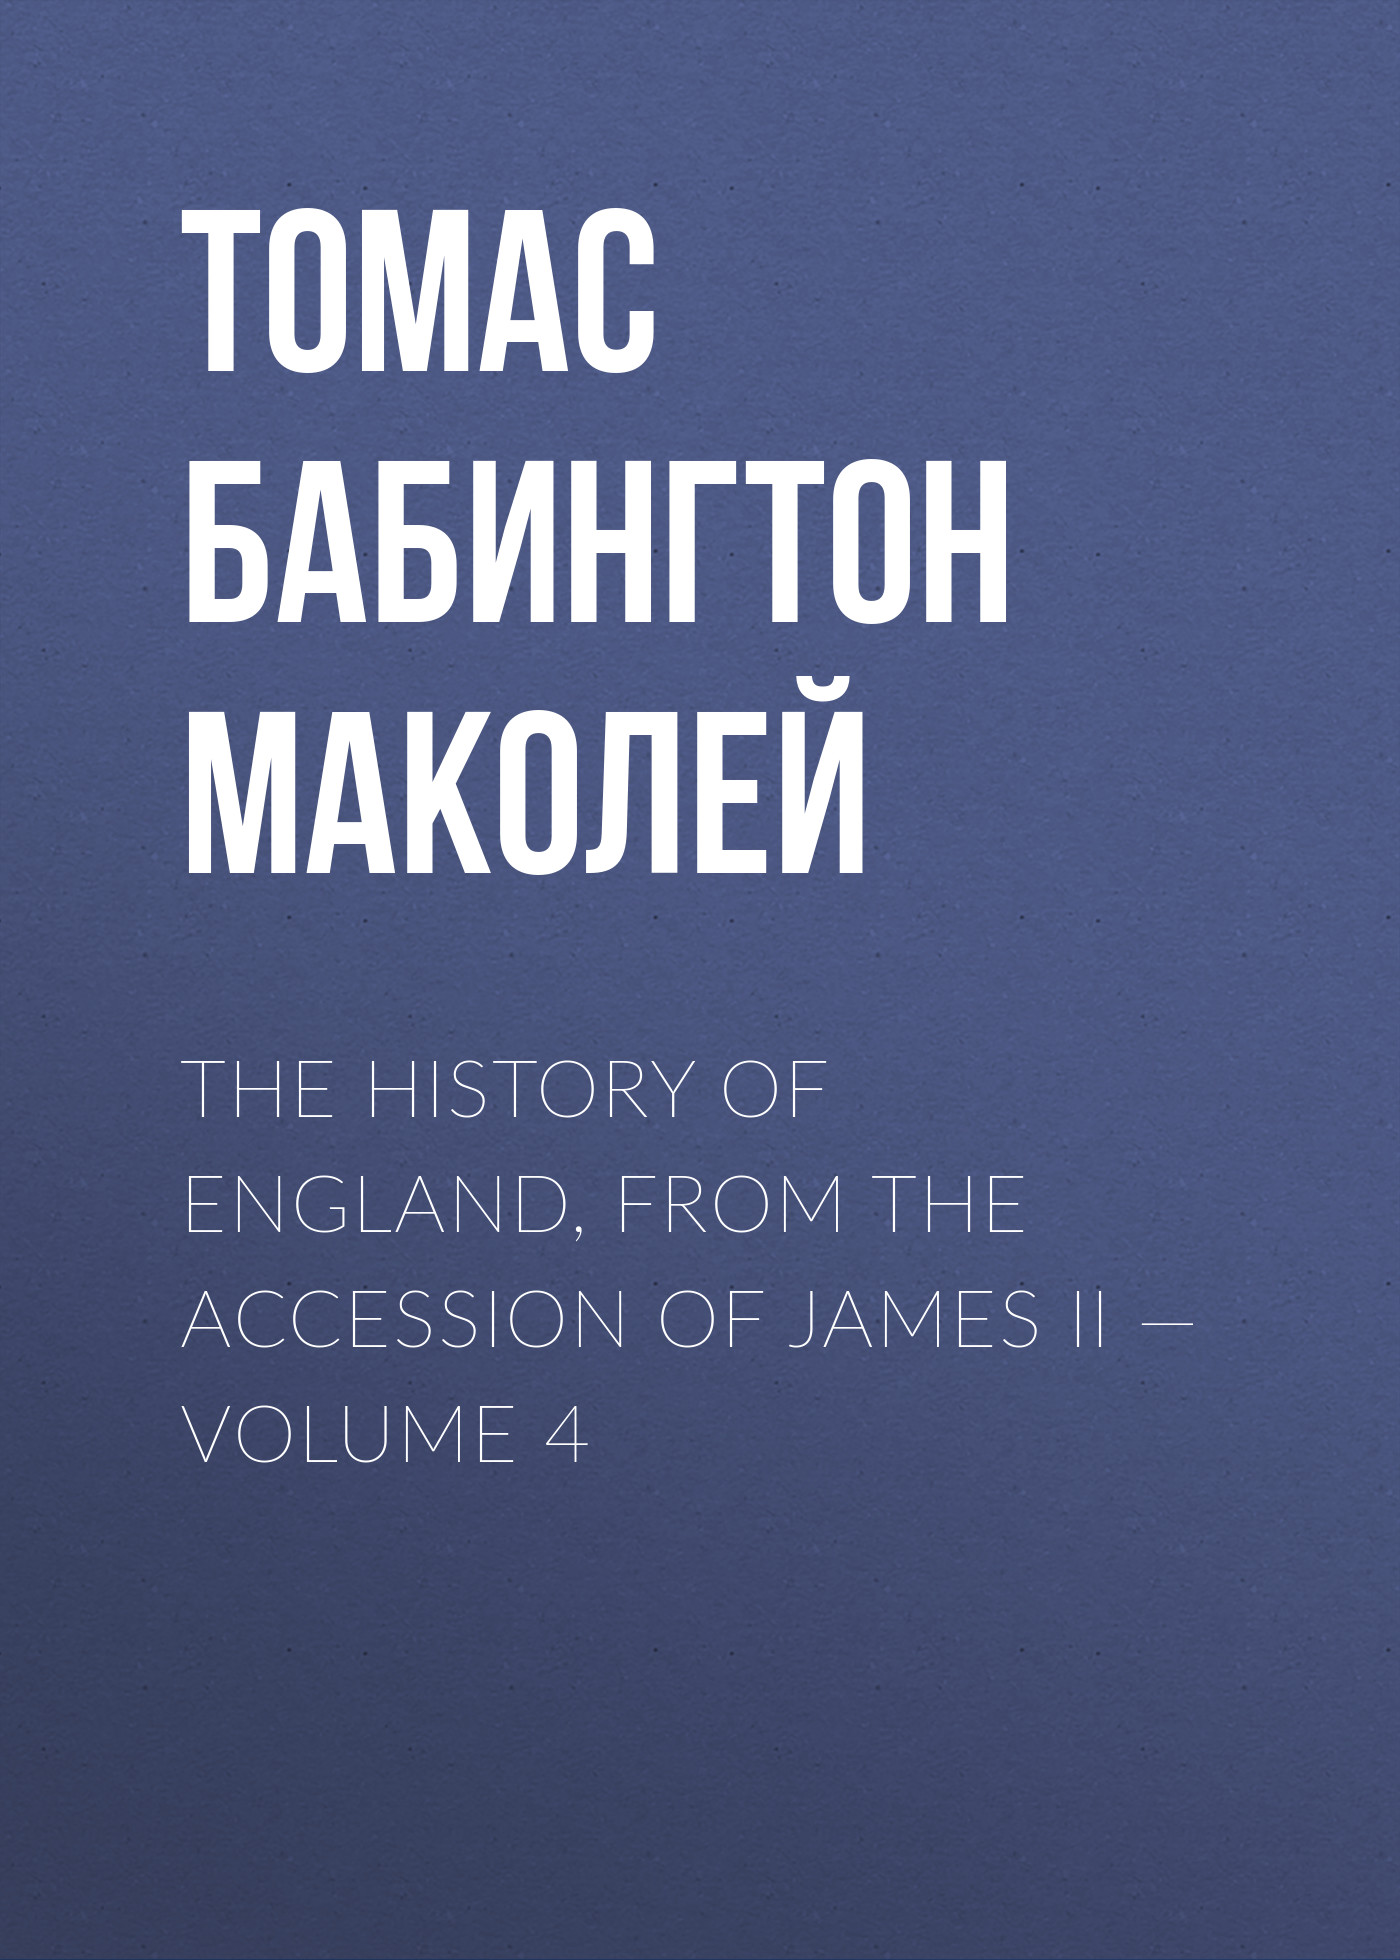 Фото - Томас Бабингтон Маколей The History of England, from the Accession of James II — Volume 4 m guizot history of richard cromwell and the restoration of charles ii volume 2